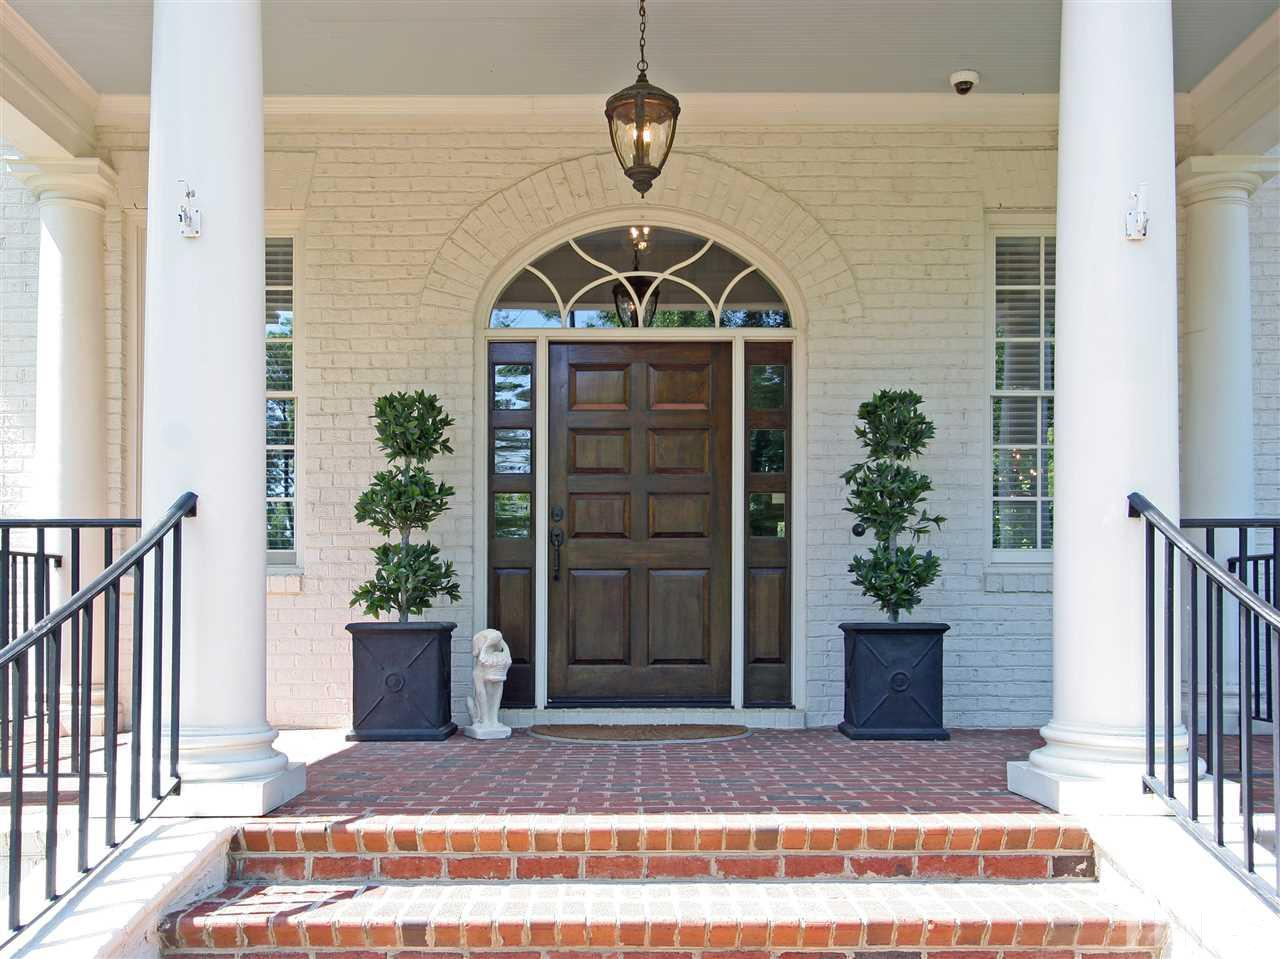 A beautiful solid-wood front door greets you and your guests. This delightful rocking-chair-style front porch is one of five covered porches that grace the home. 12 Oaks is a friendly, walkable neighborhood with sidewalks adorning tree-lined streets.